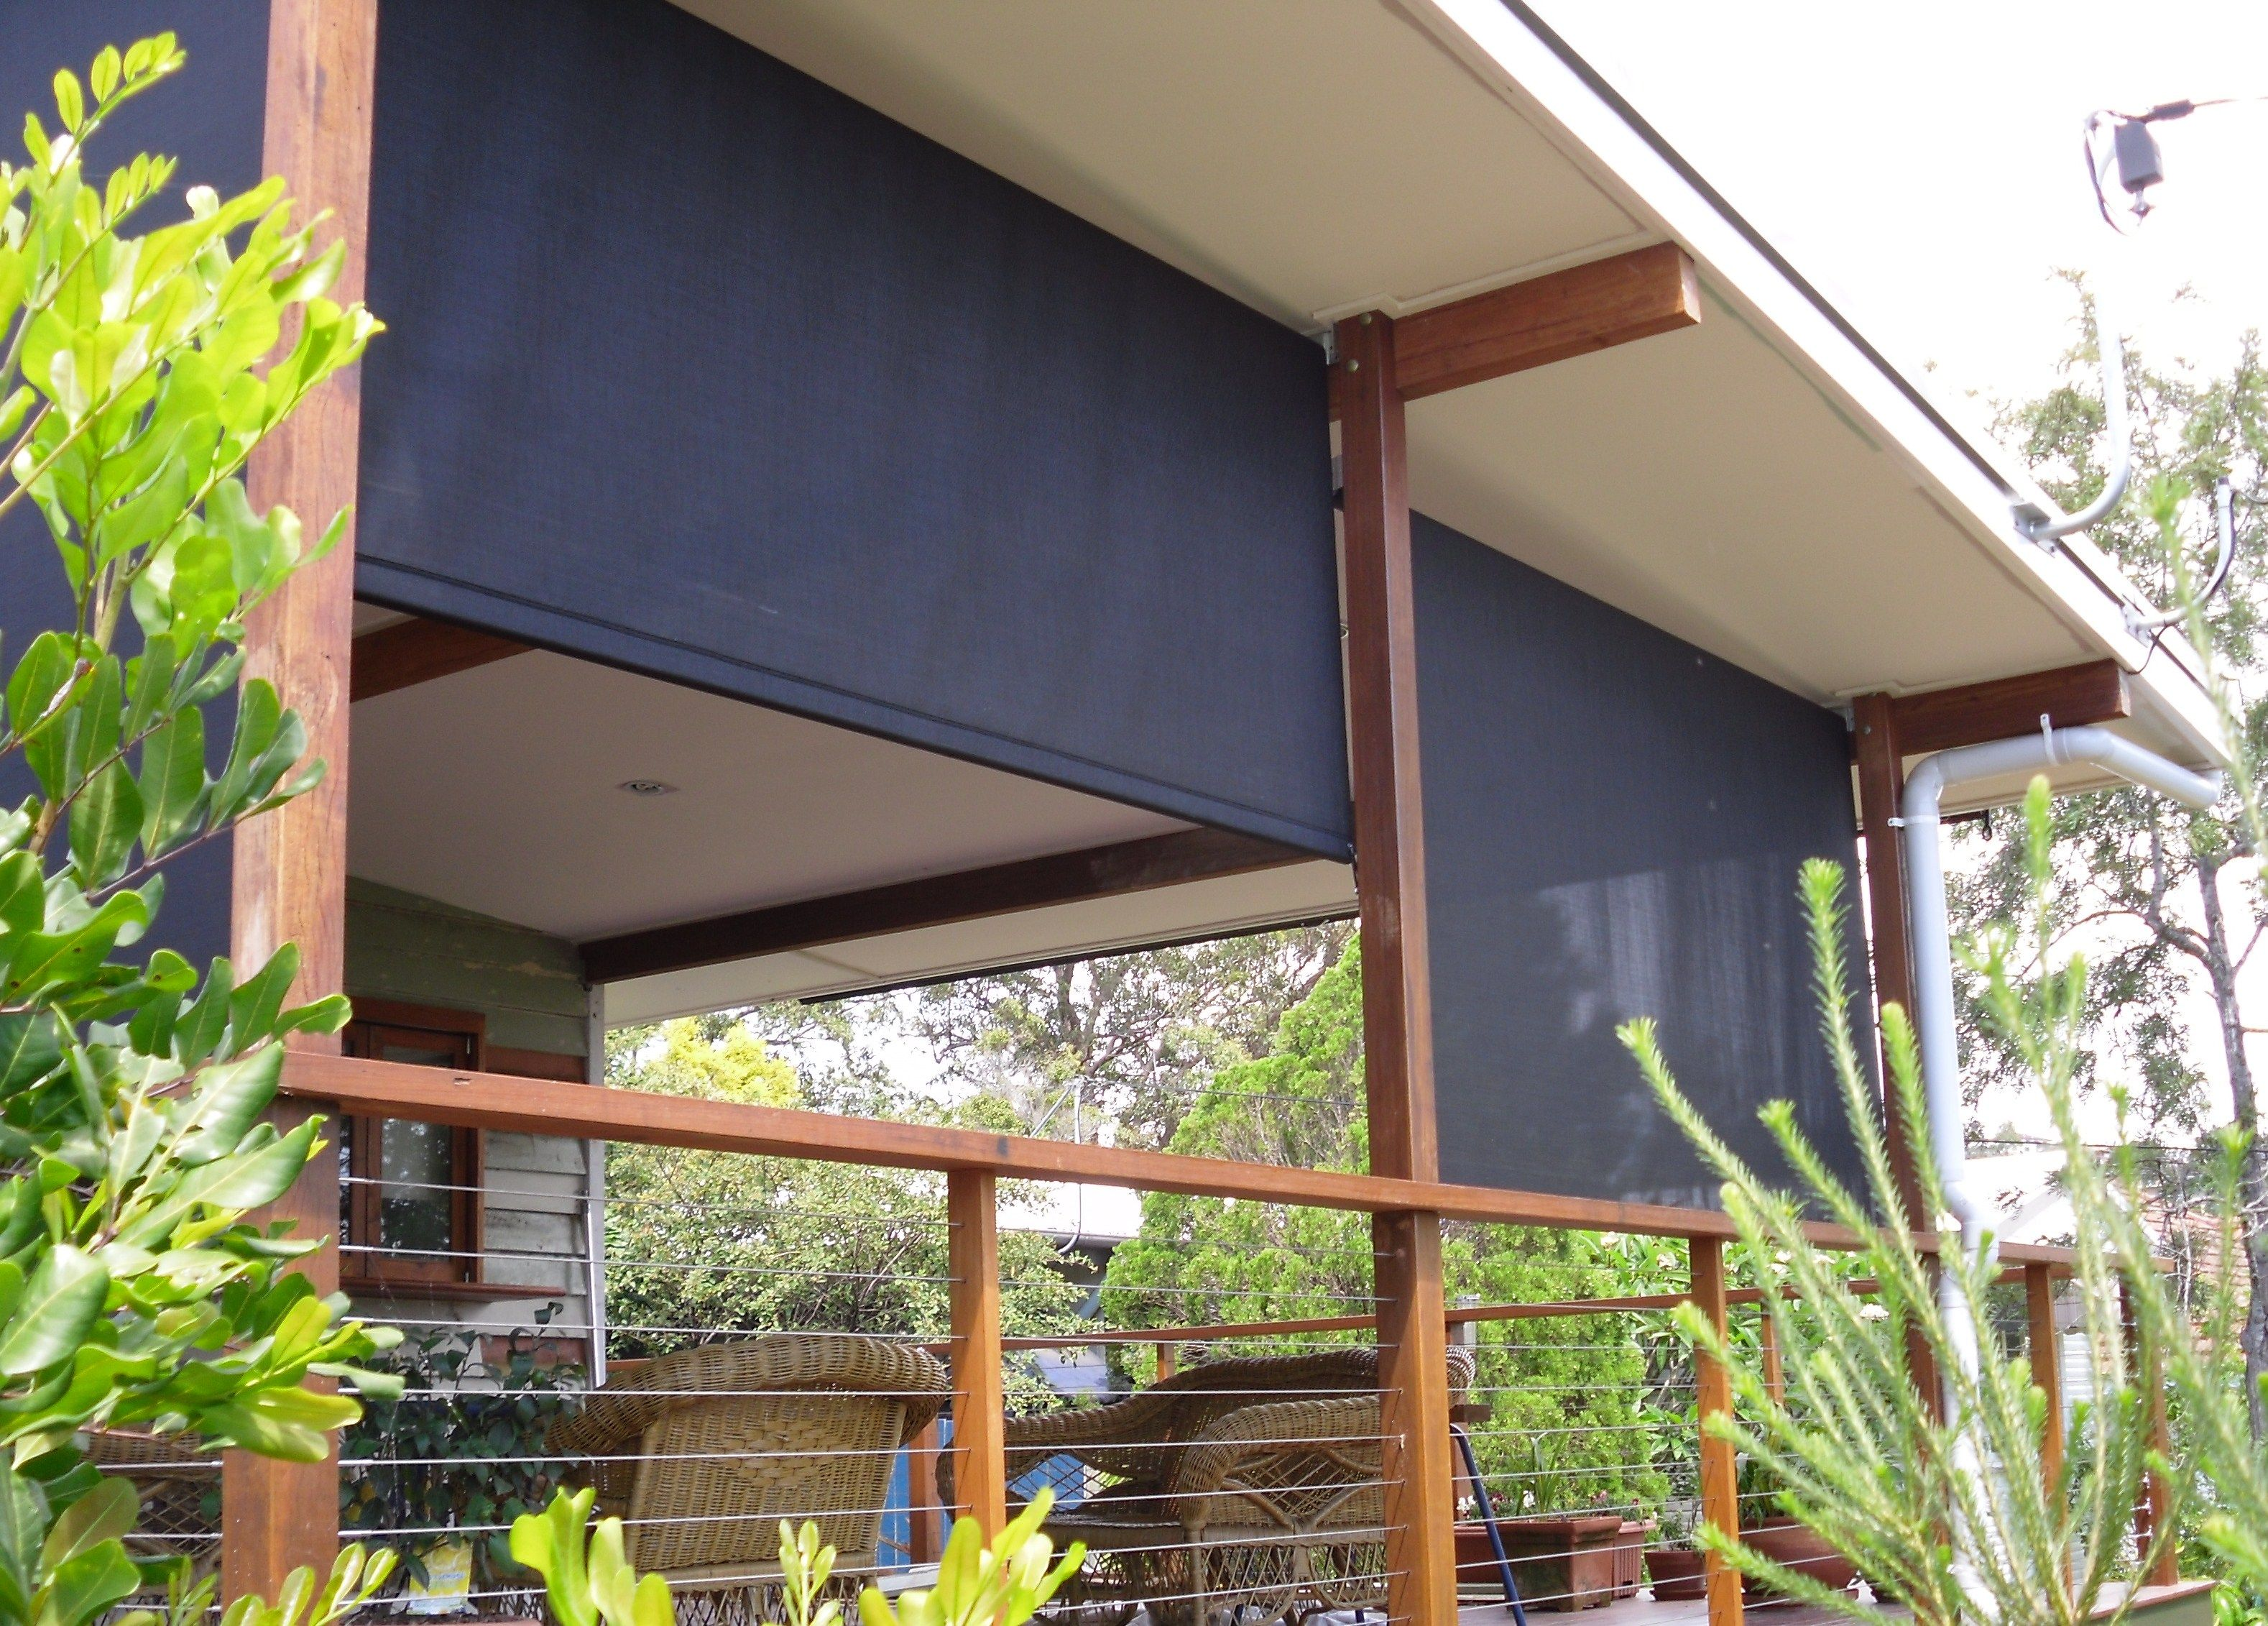 Add Style And Privacy With Custom Blinds. In View Installed Retractable Roller